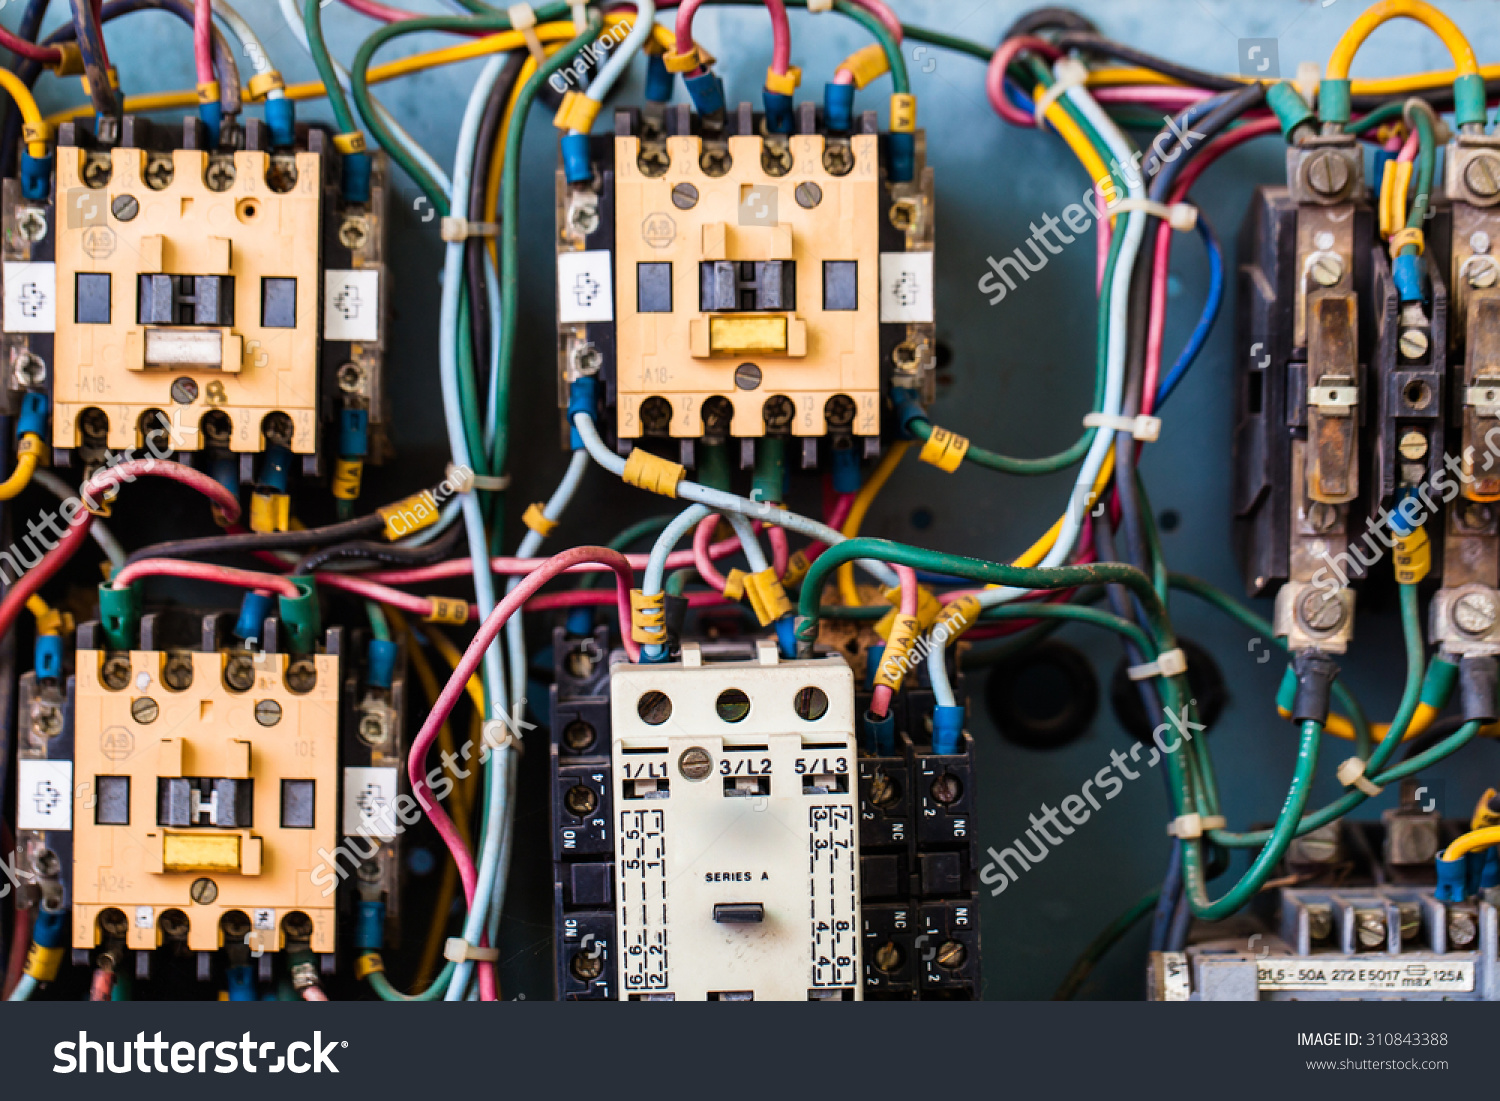 Electrical Circuits Stock Photo Edit Now 310843388 Shutterstock Electric Circuit Model